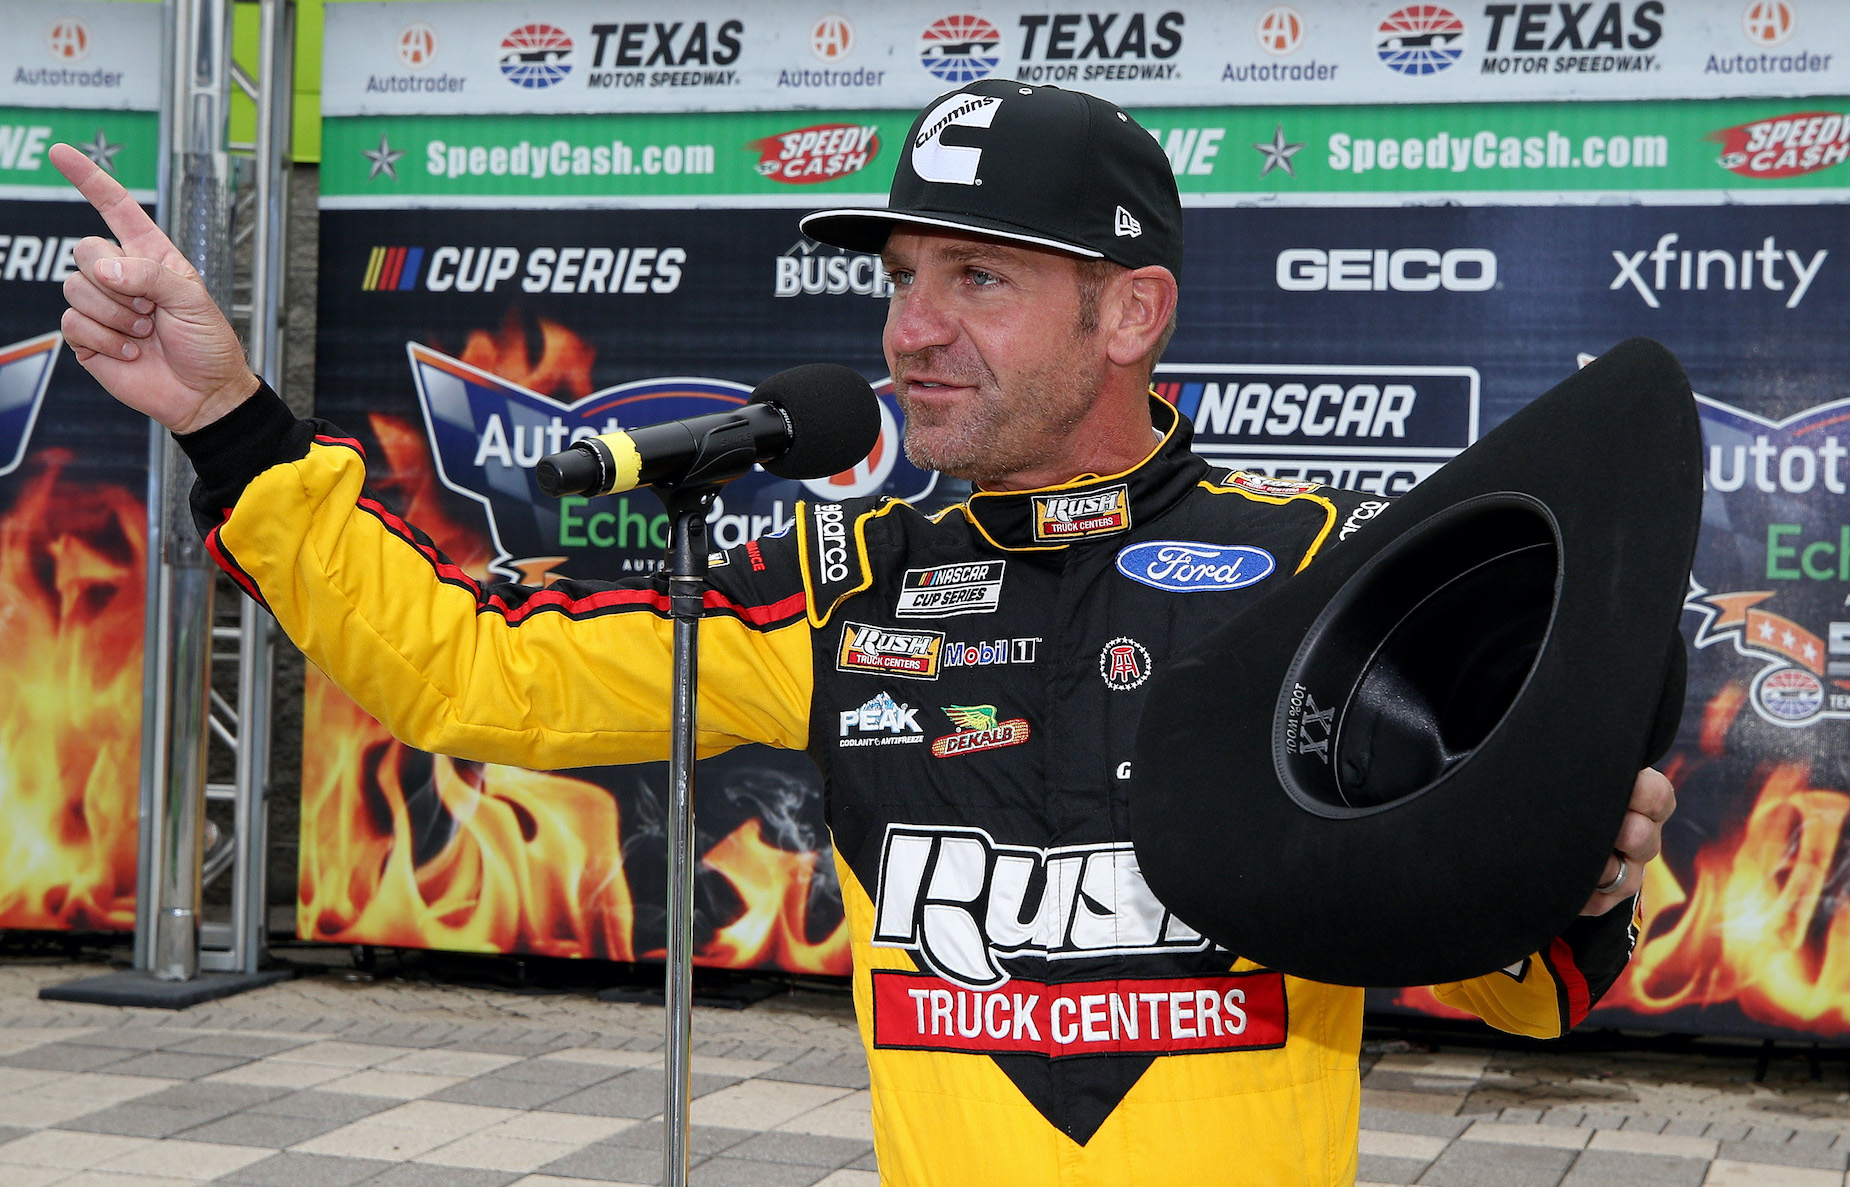 Clint Bowyer speaks to the crowd at the end of his NASCAR career.